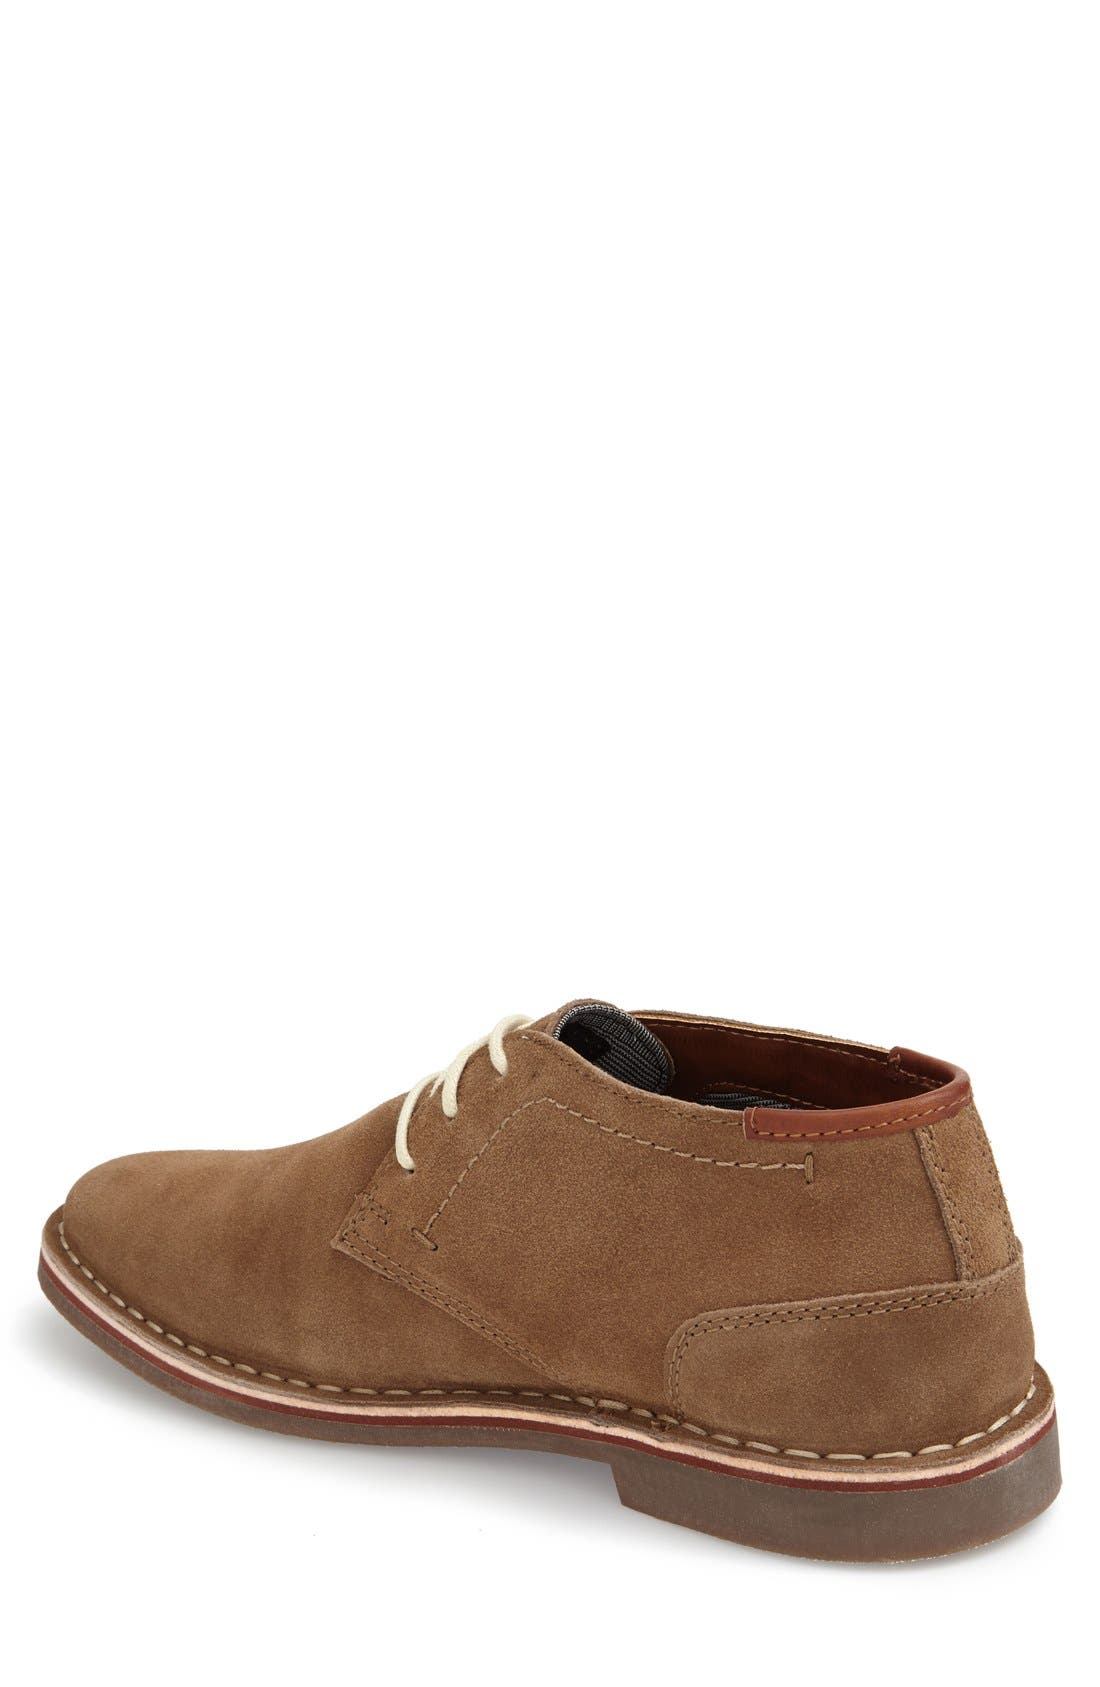 'Desert Sun' Chukka Boot,                             Alternate thumbnail 2, color,                             Taupe Suede